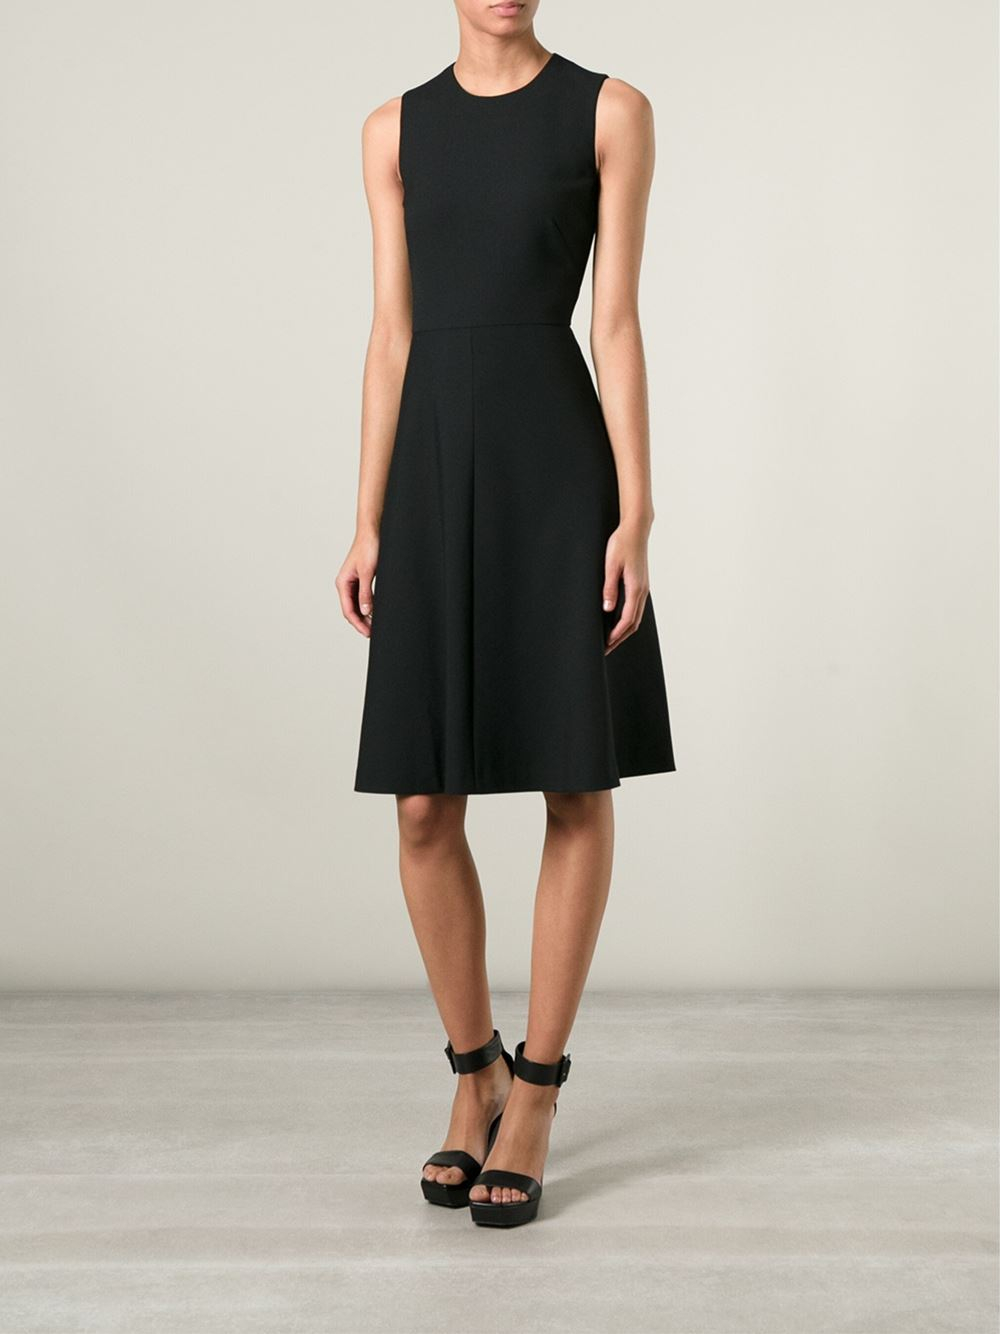 Red valentino Fitted Waist Flared Skirt Sleeveless Dress in Black | Lyst